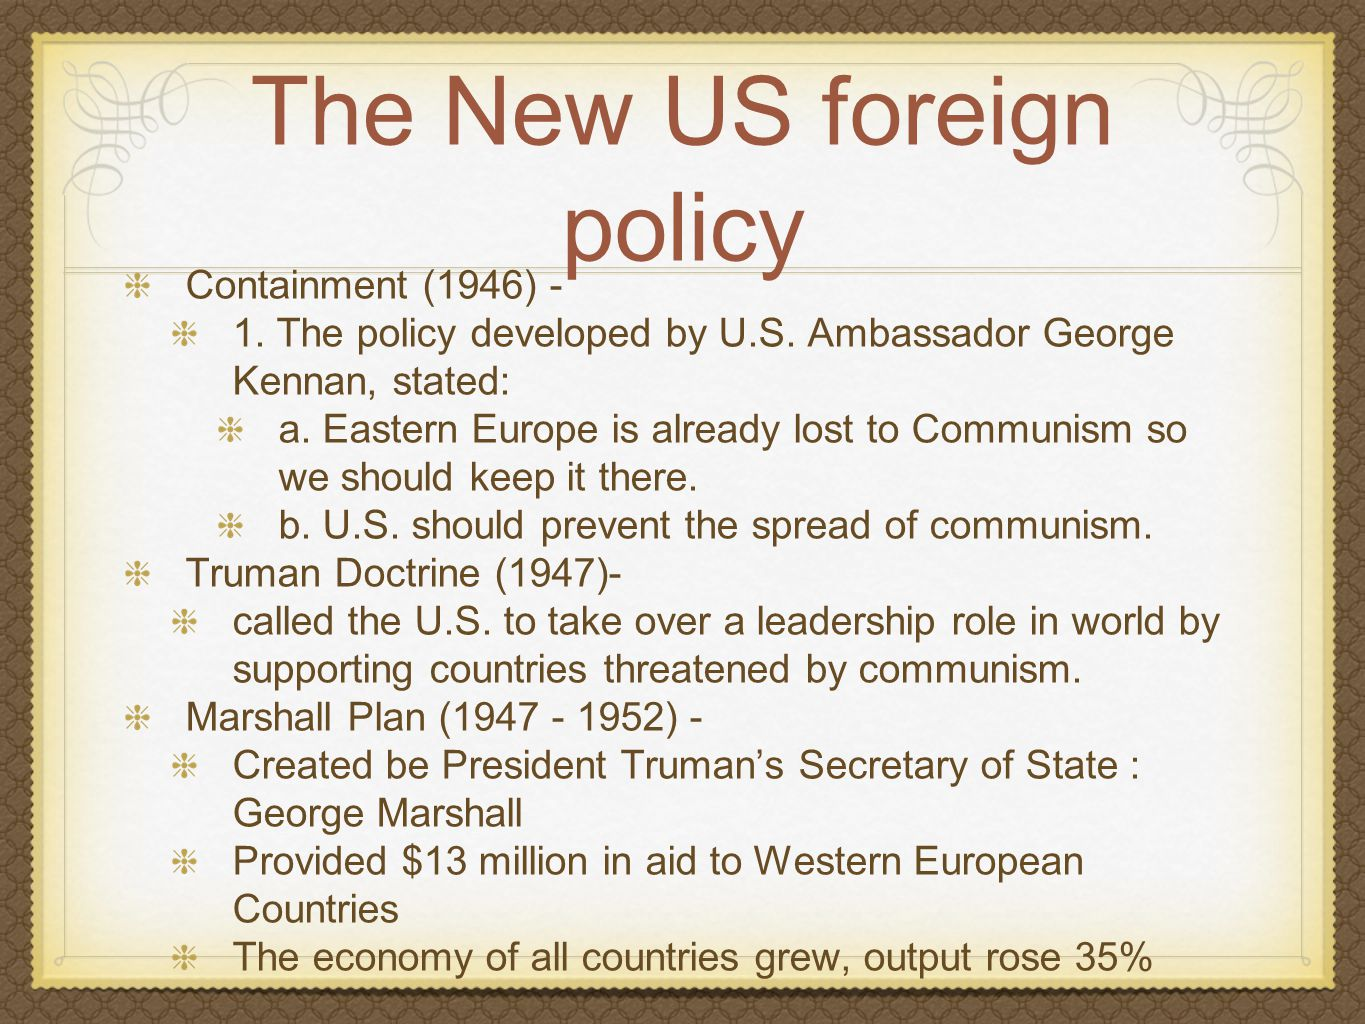 The New US foreign policy